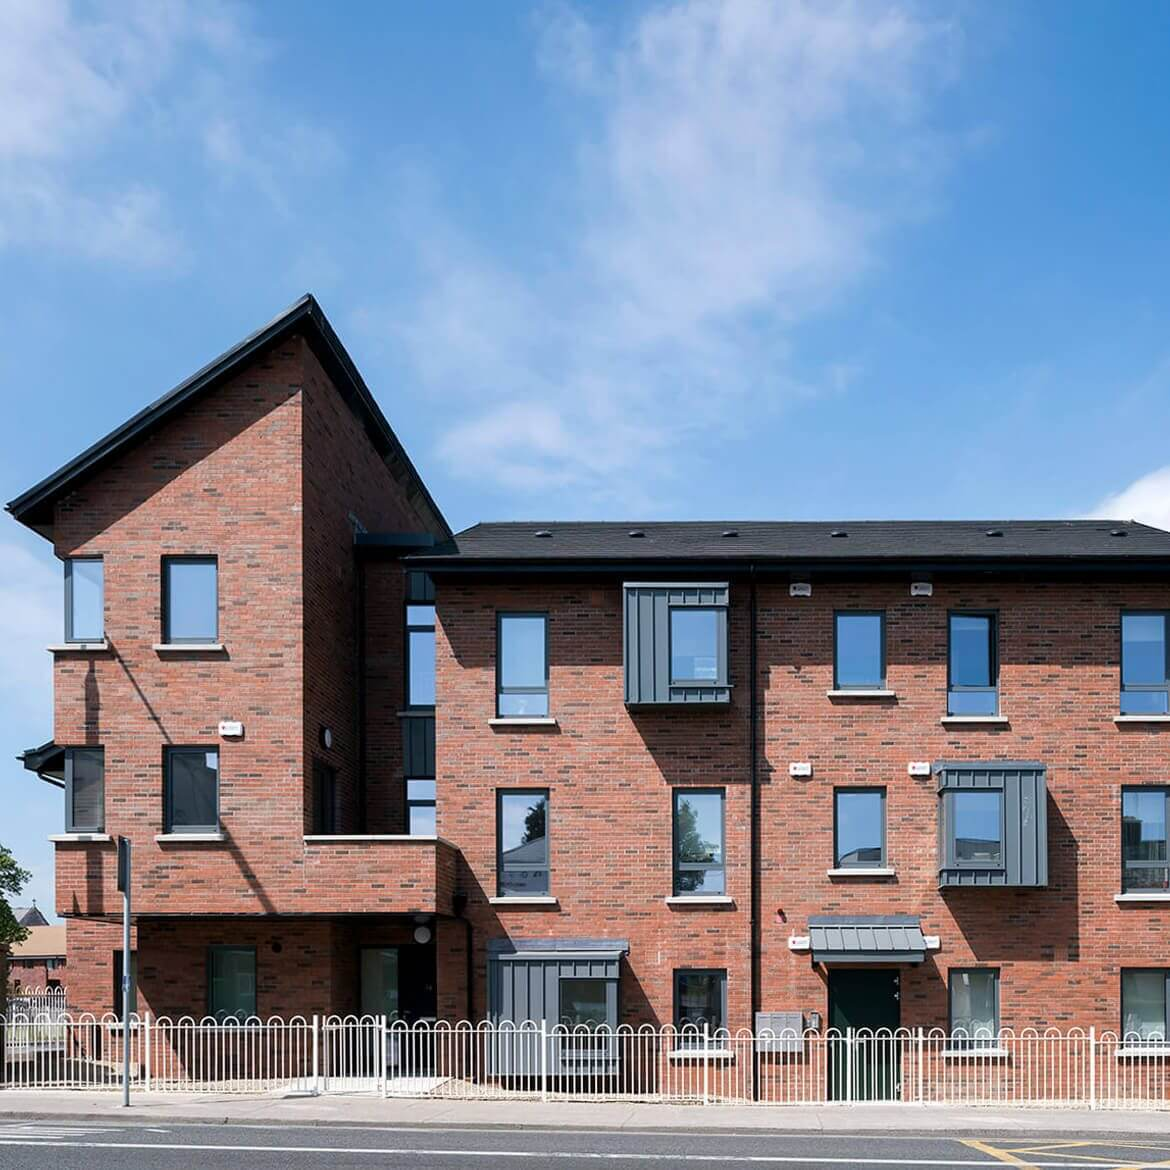 Residential Cjfa Architecture Greenmount Close Harolds Cross Dublin Square